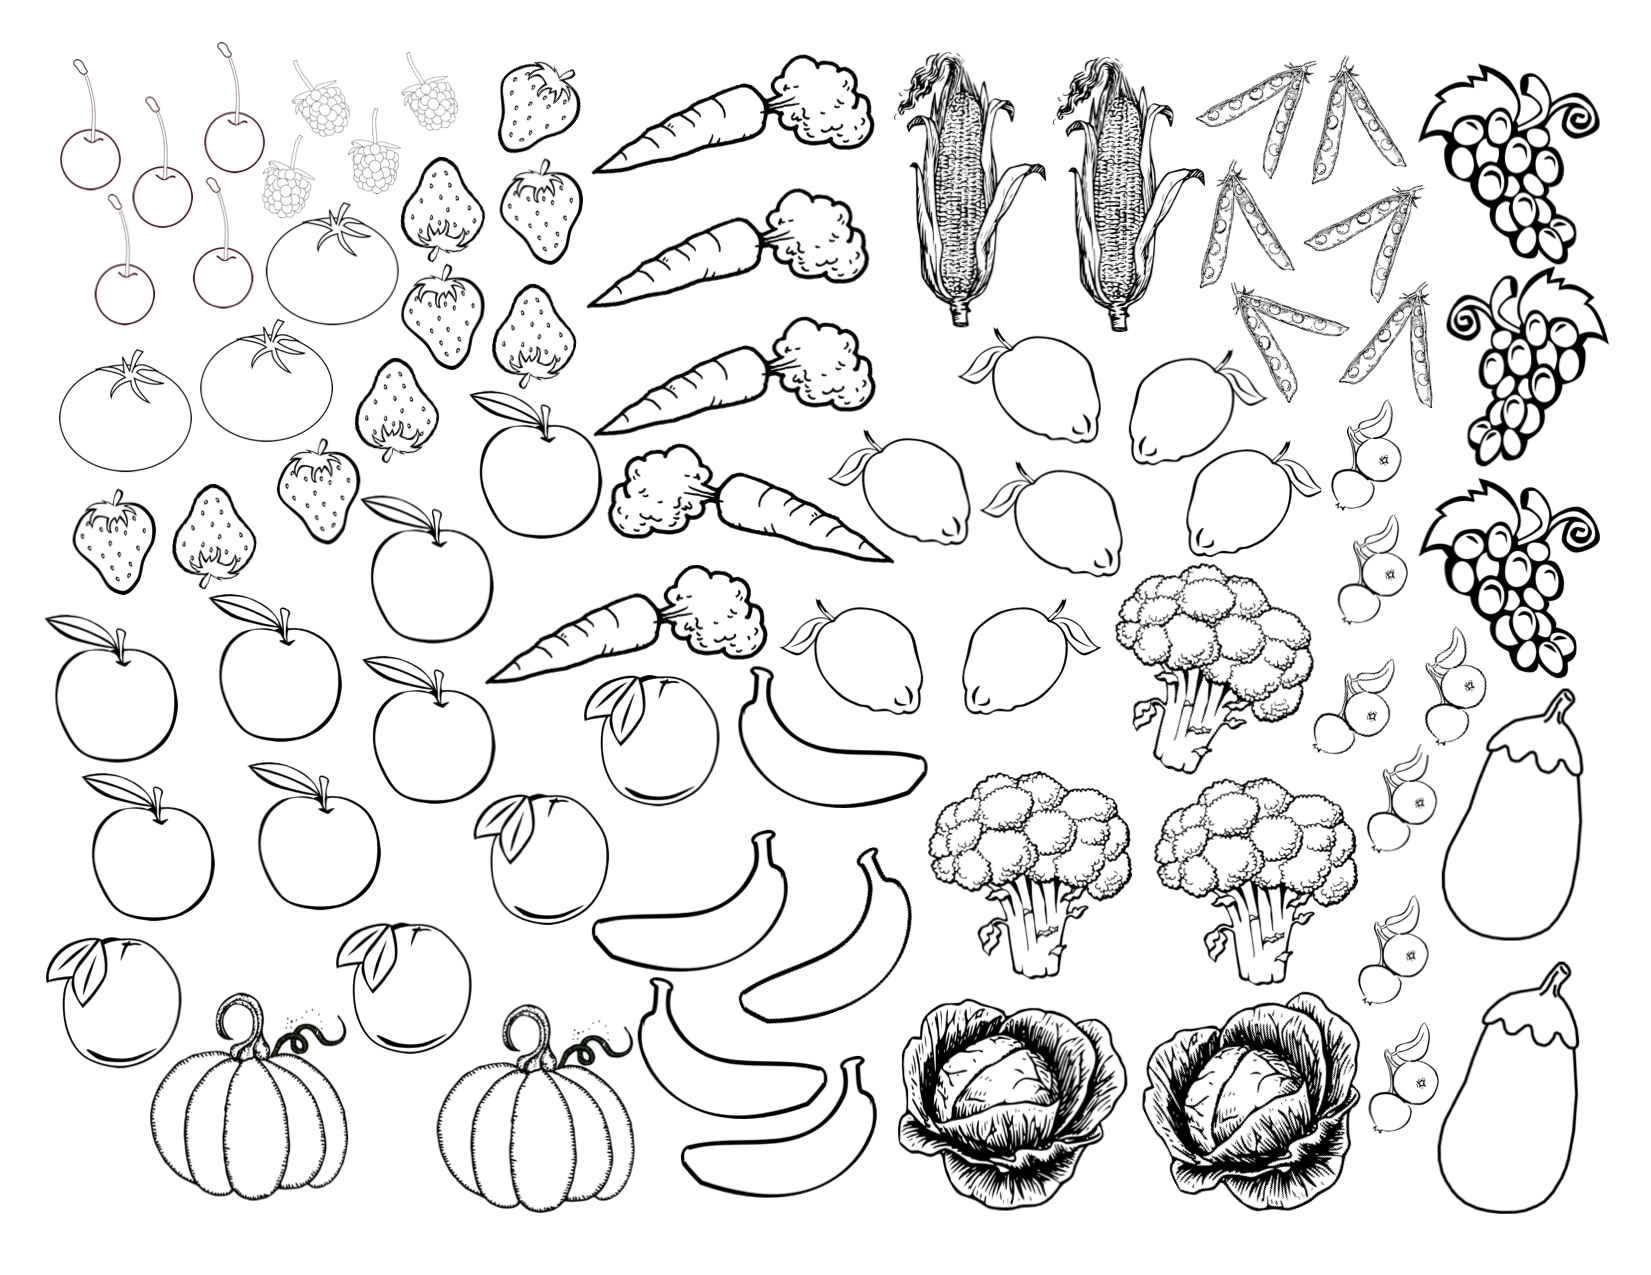 coloring printable fruits and vegetables fruits and vegetables coloring pages for kids printable coloring fruits vegetables printable and